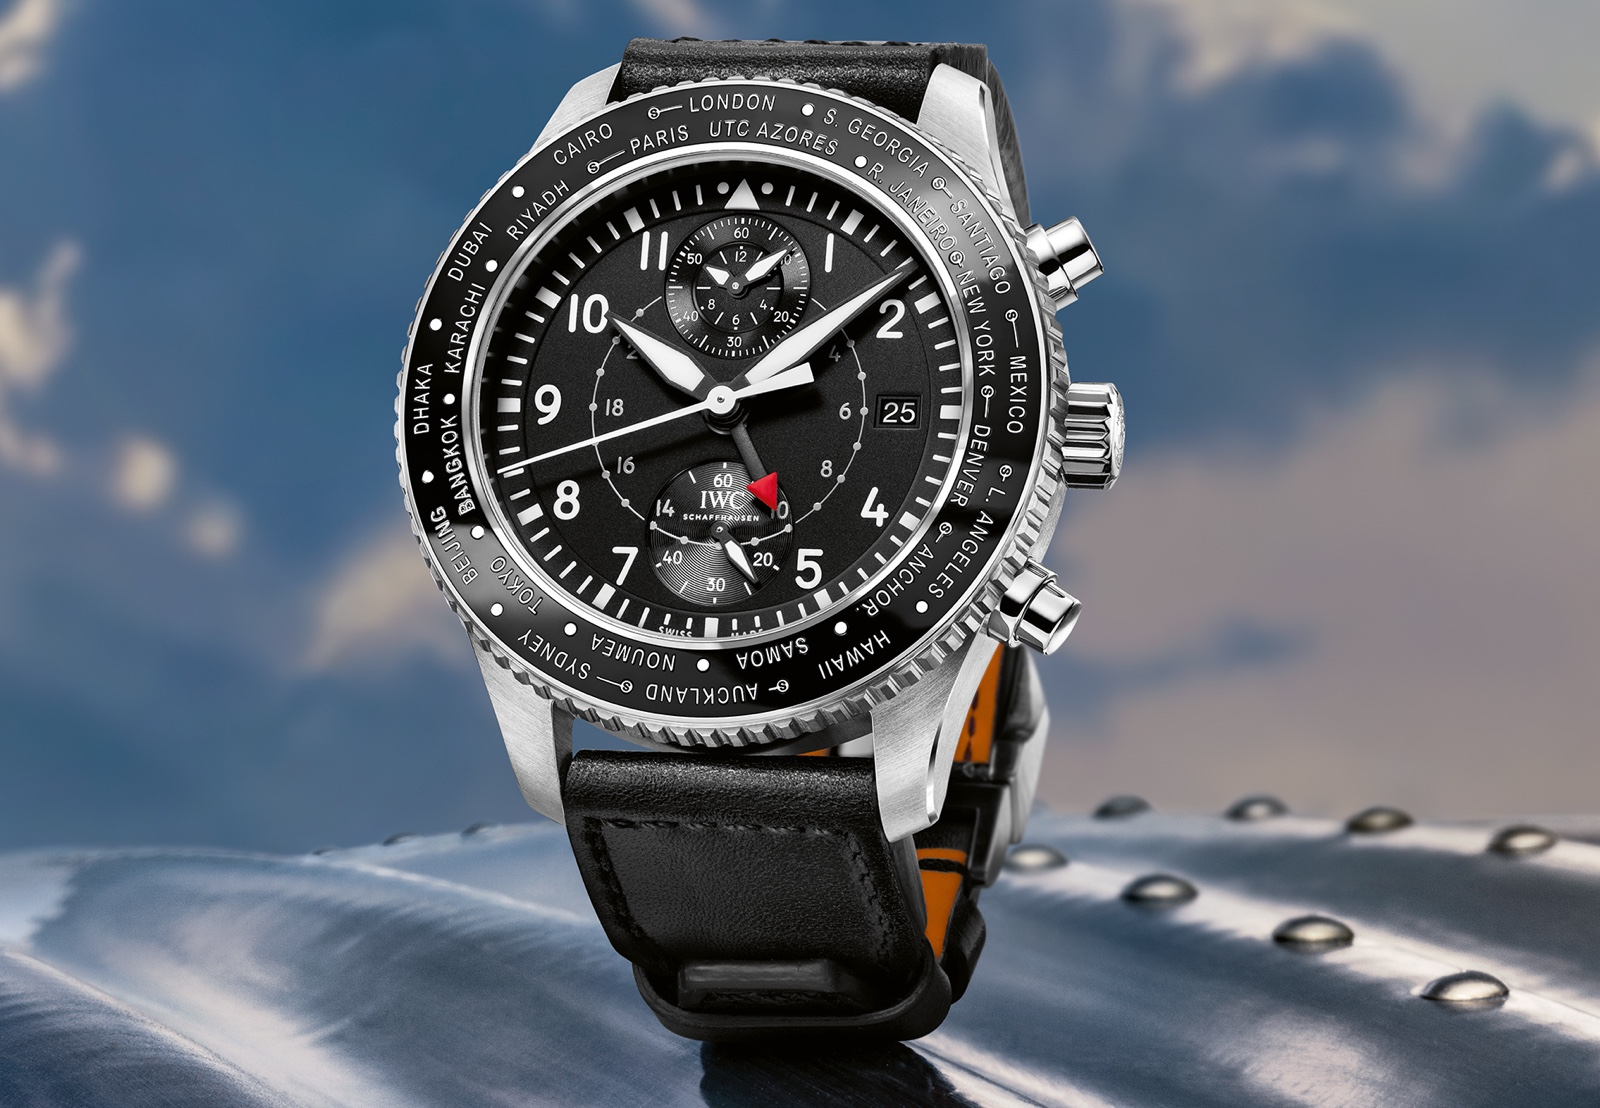 IWC 2016 Pilot Watch Timezoner Chronograph